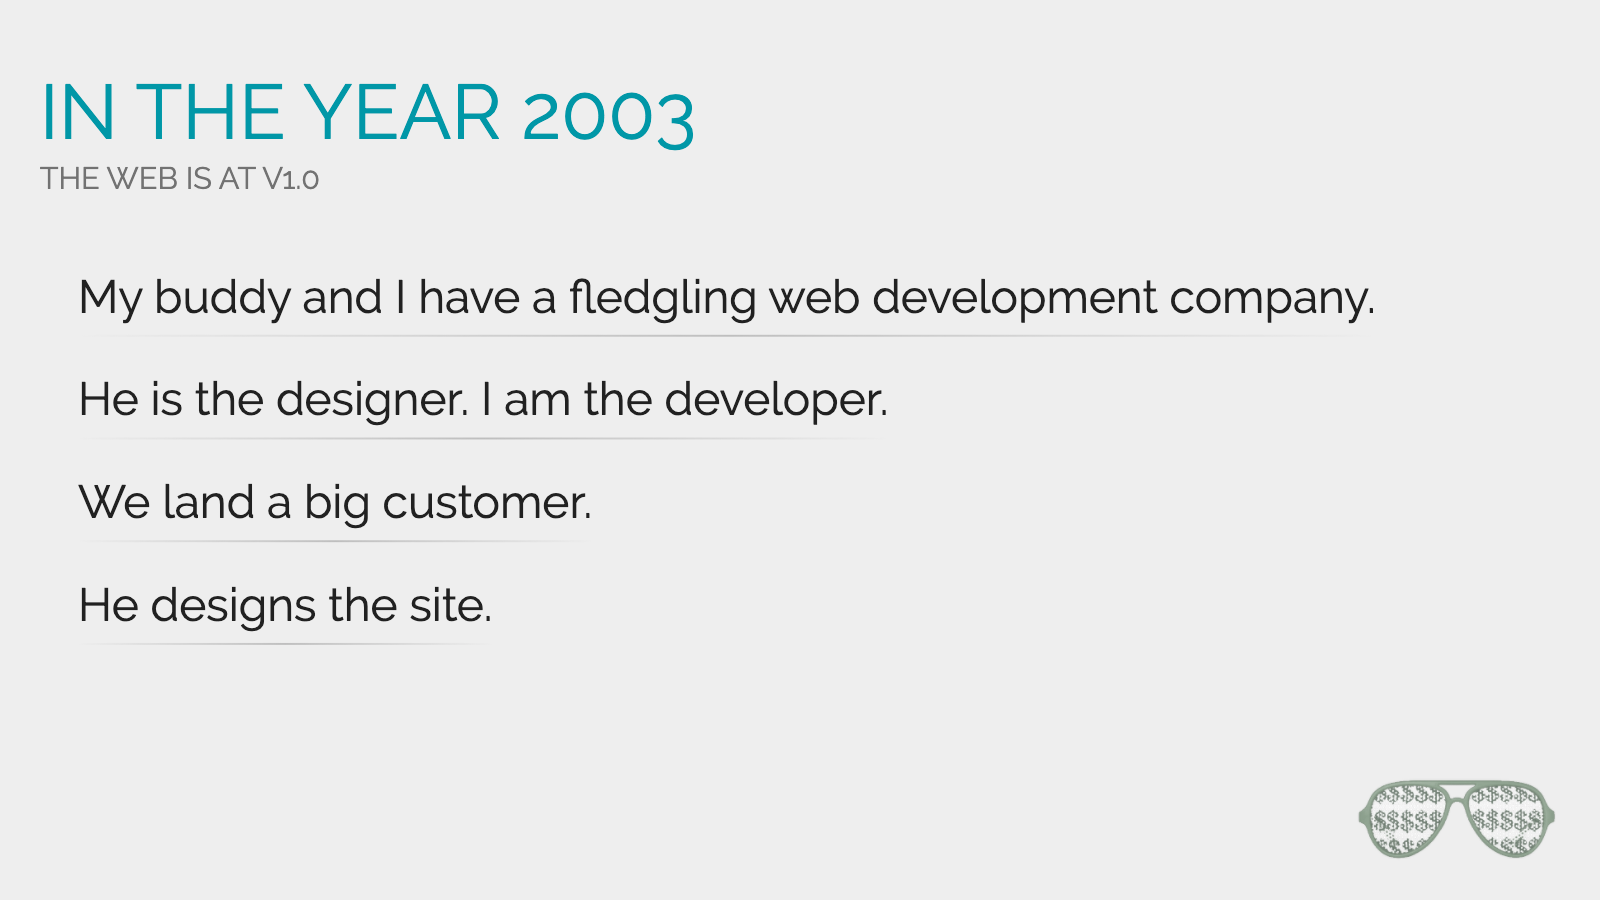 Slide content, In the year 2003, my buddy and I have a fledgling web development company